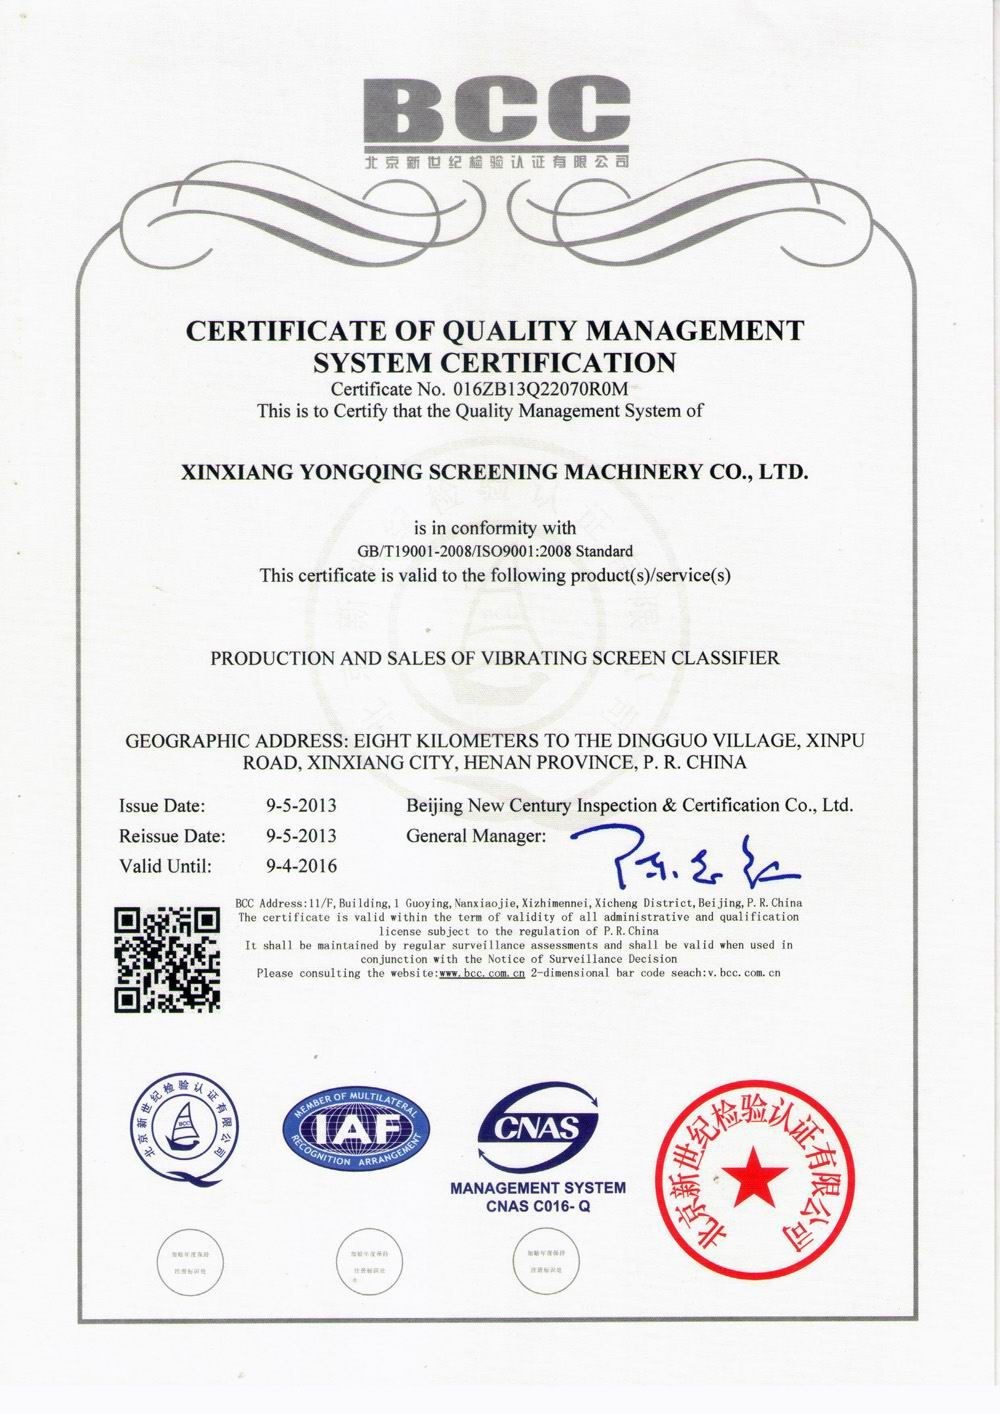 CERTIFICATE OF QUALITY MANAGEMENT AND SYSTEM